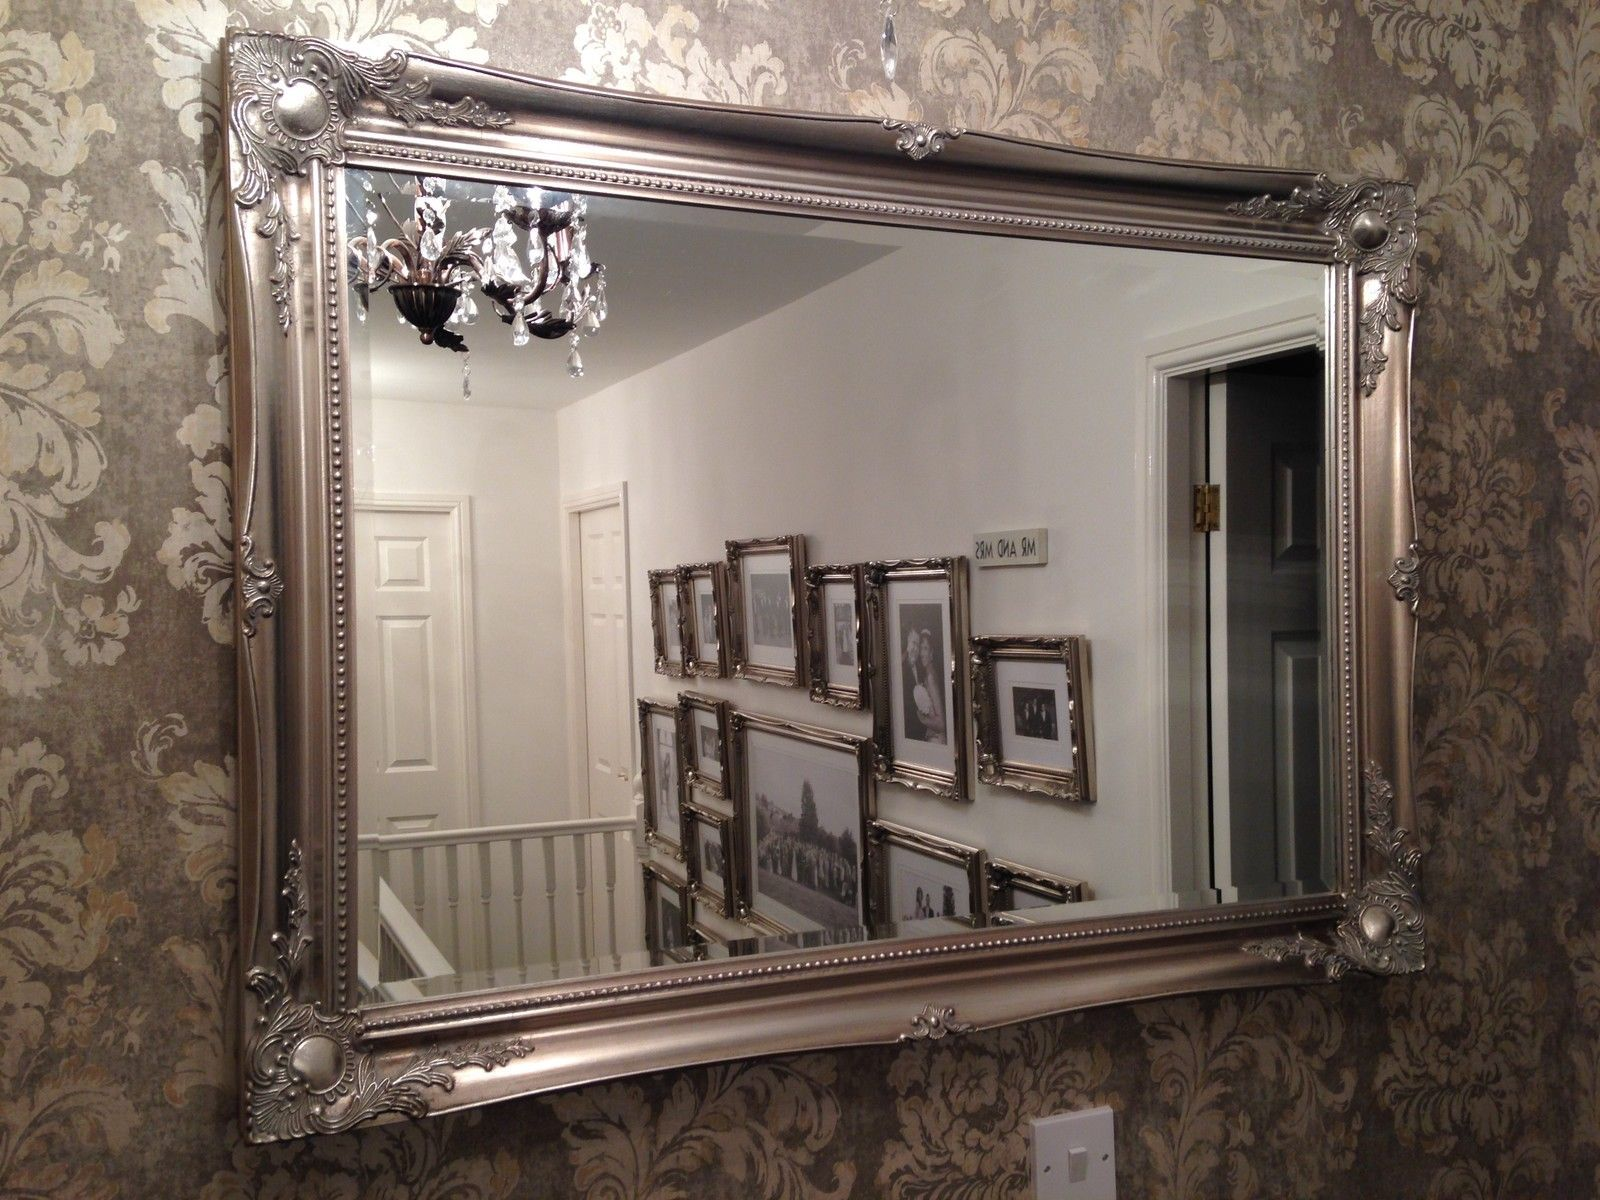 X LARGE Antique Silver Hairdressers Salon Barber Wall Mirror SAVE ££s *New*